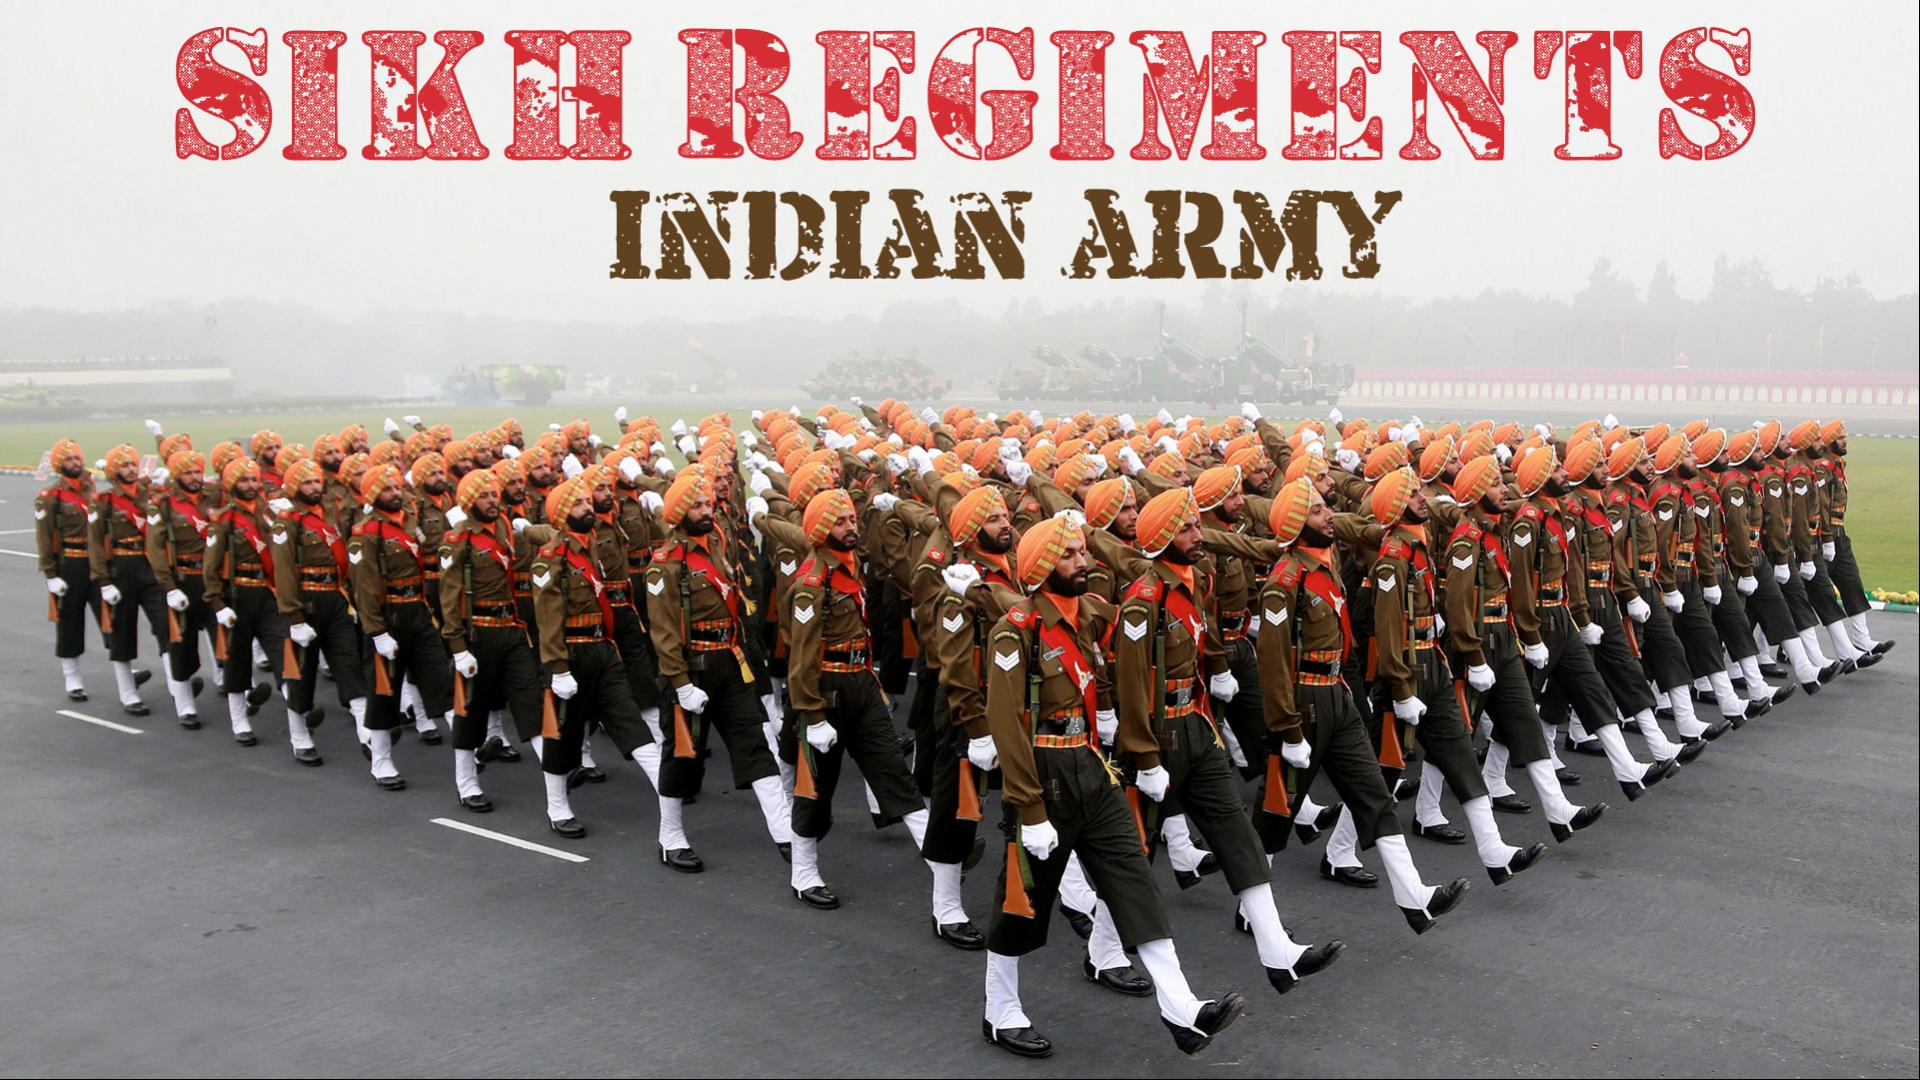 Sikh Regiment Indian Army Wallpaper Hd Wallpapers Wallpapers